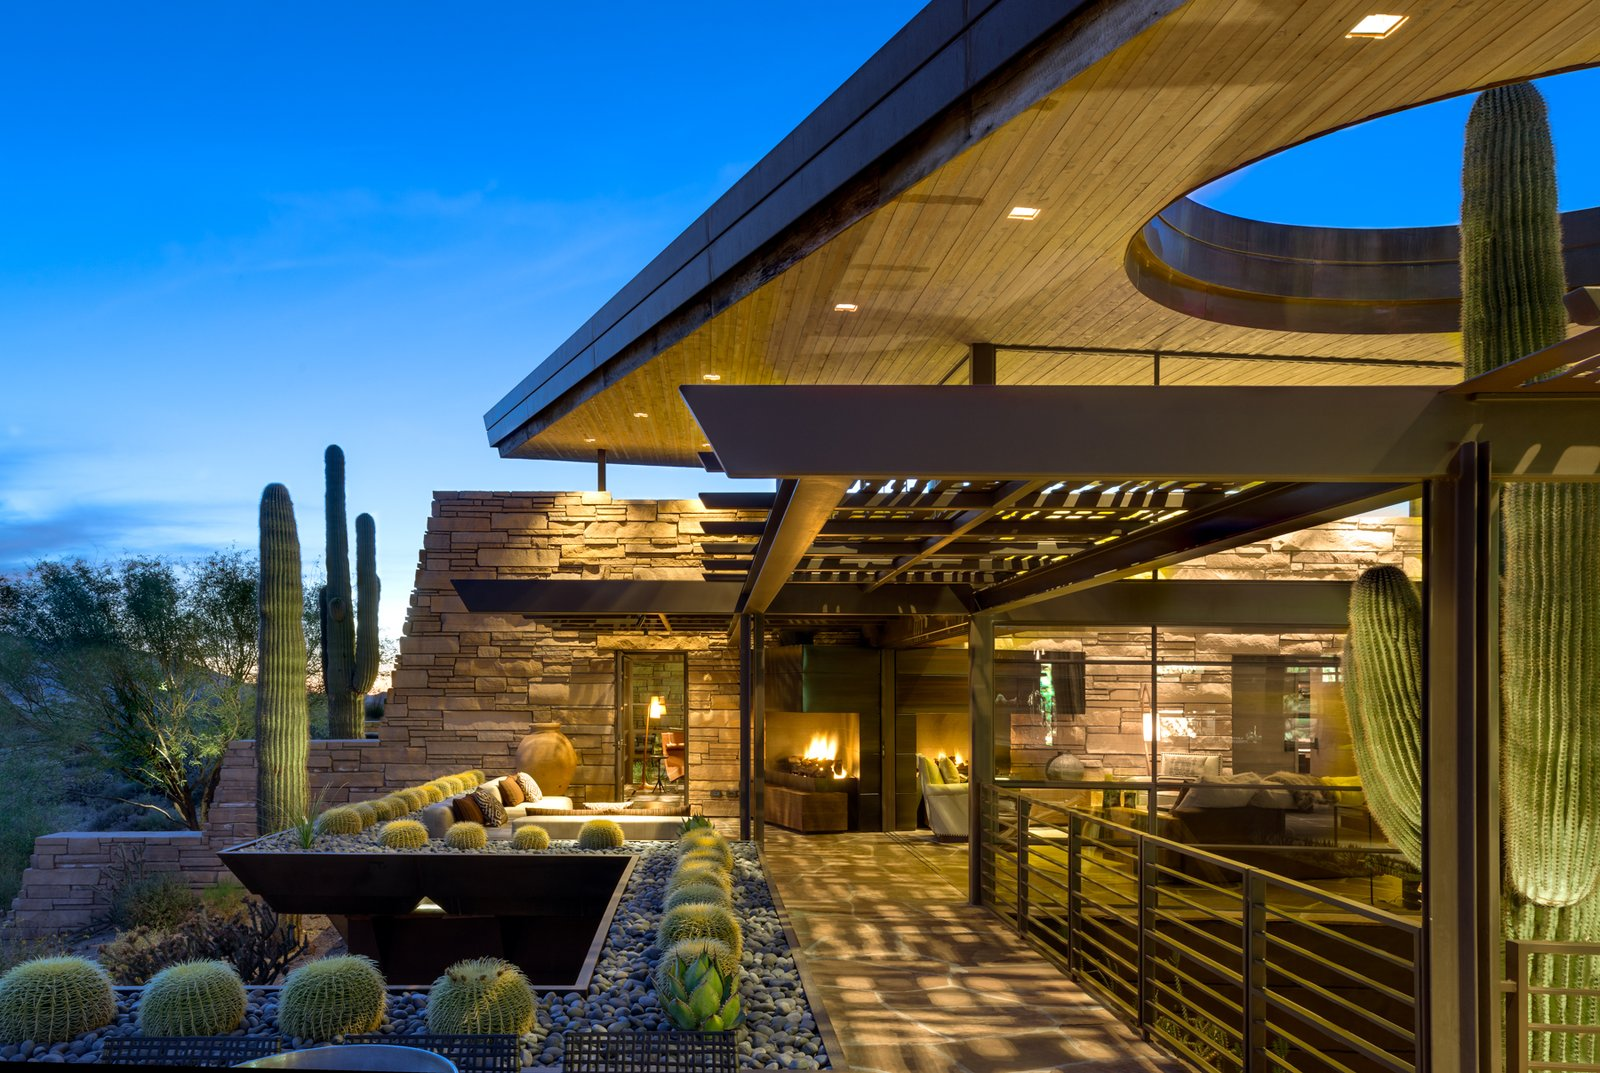 Outdoor and Large Patio, Porch, Deck South Patio Layering  Best Photos from Saguaro Ridge/Orem Residence